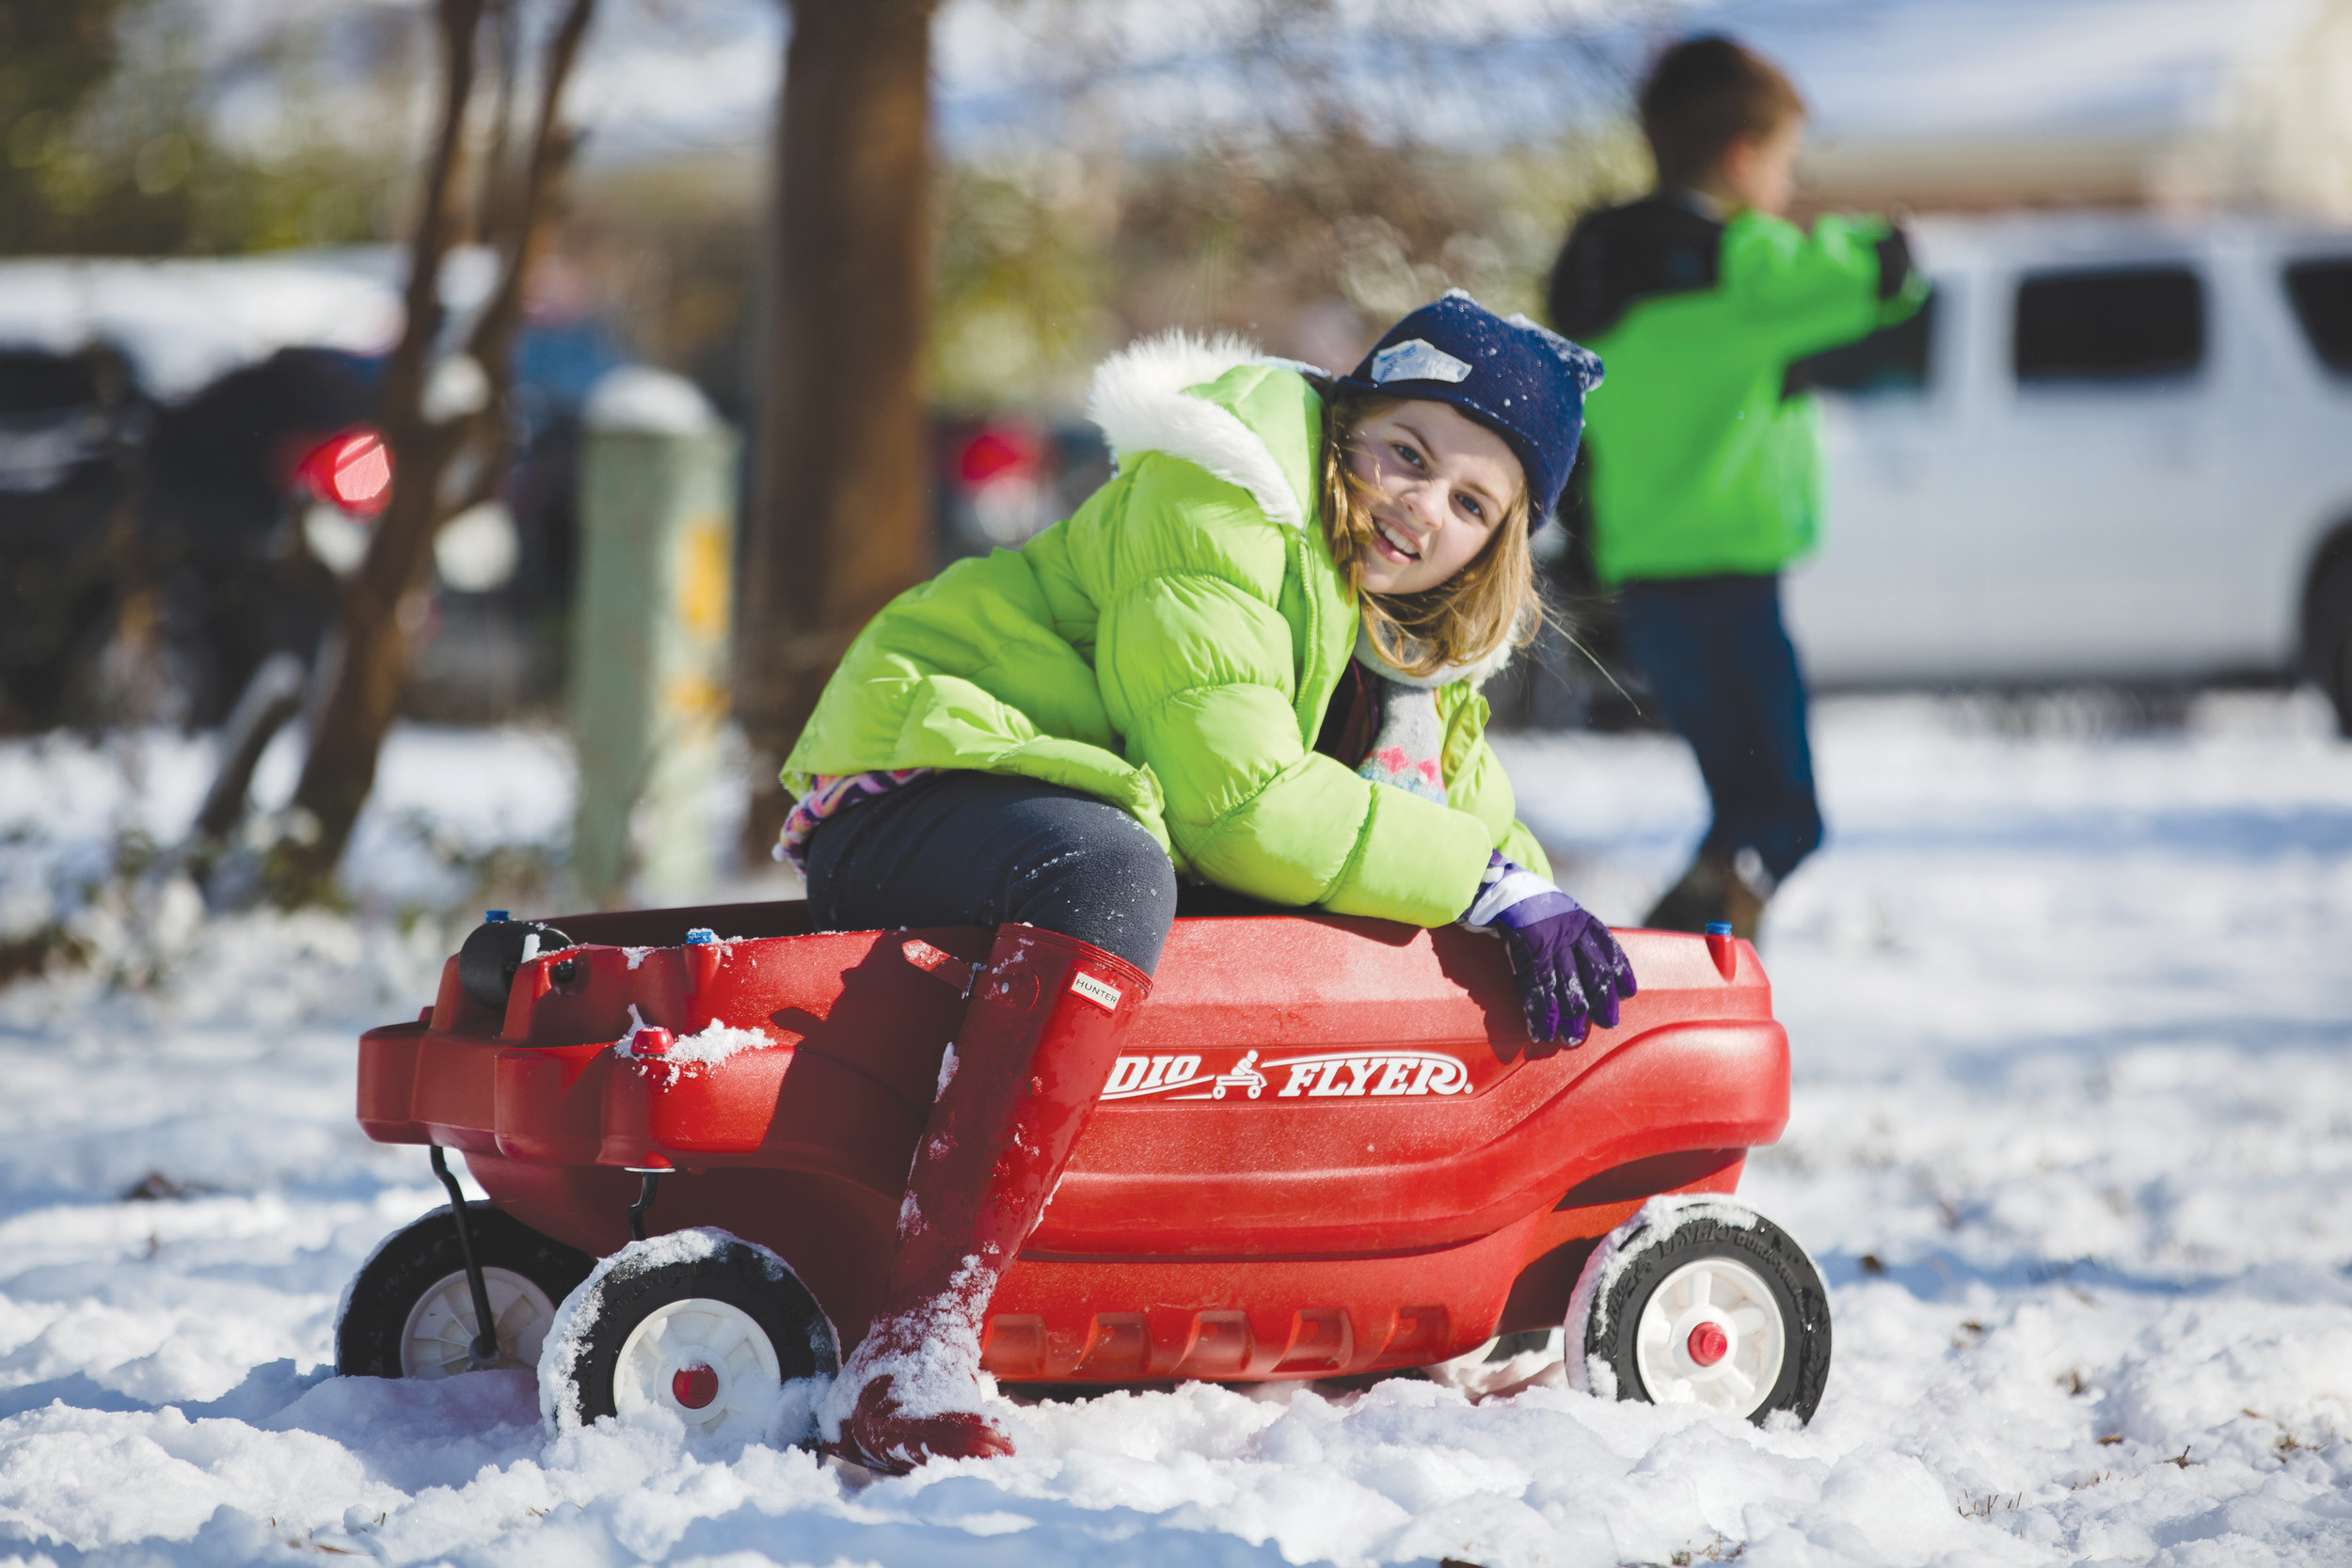 Paige Sanders climbs onto a red wagon in the snow while her friends sled on Thursday in Sumter.